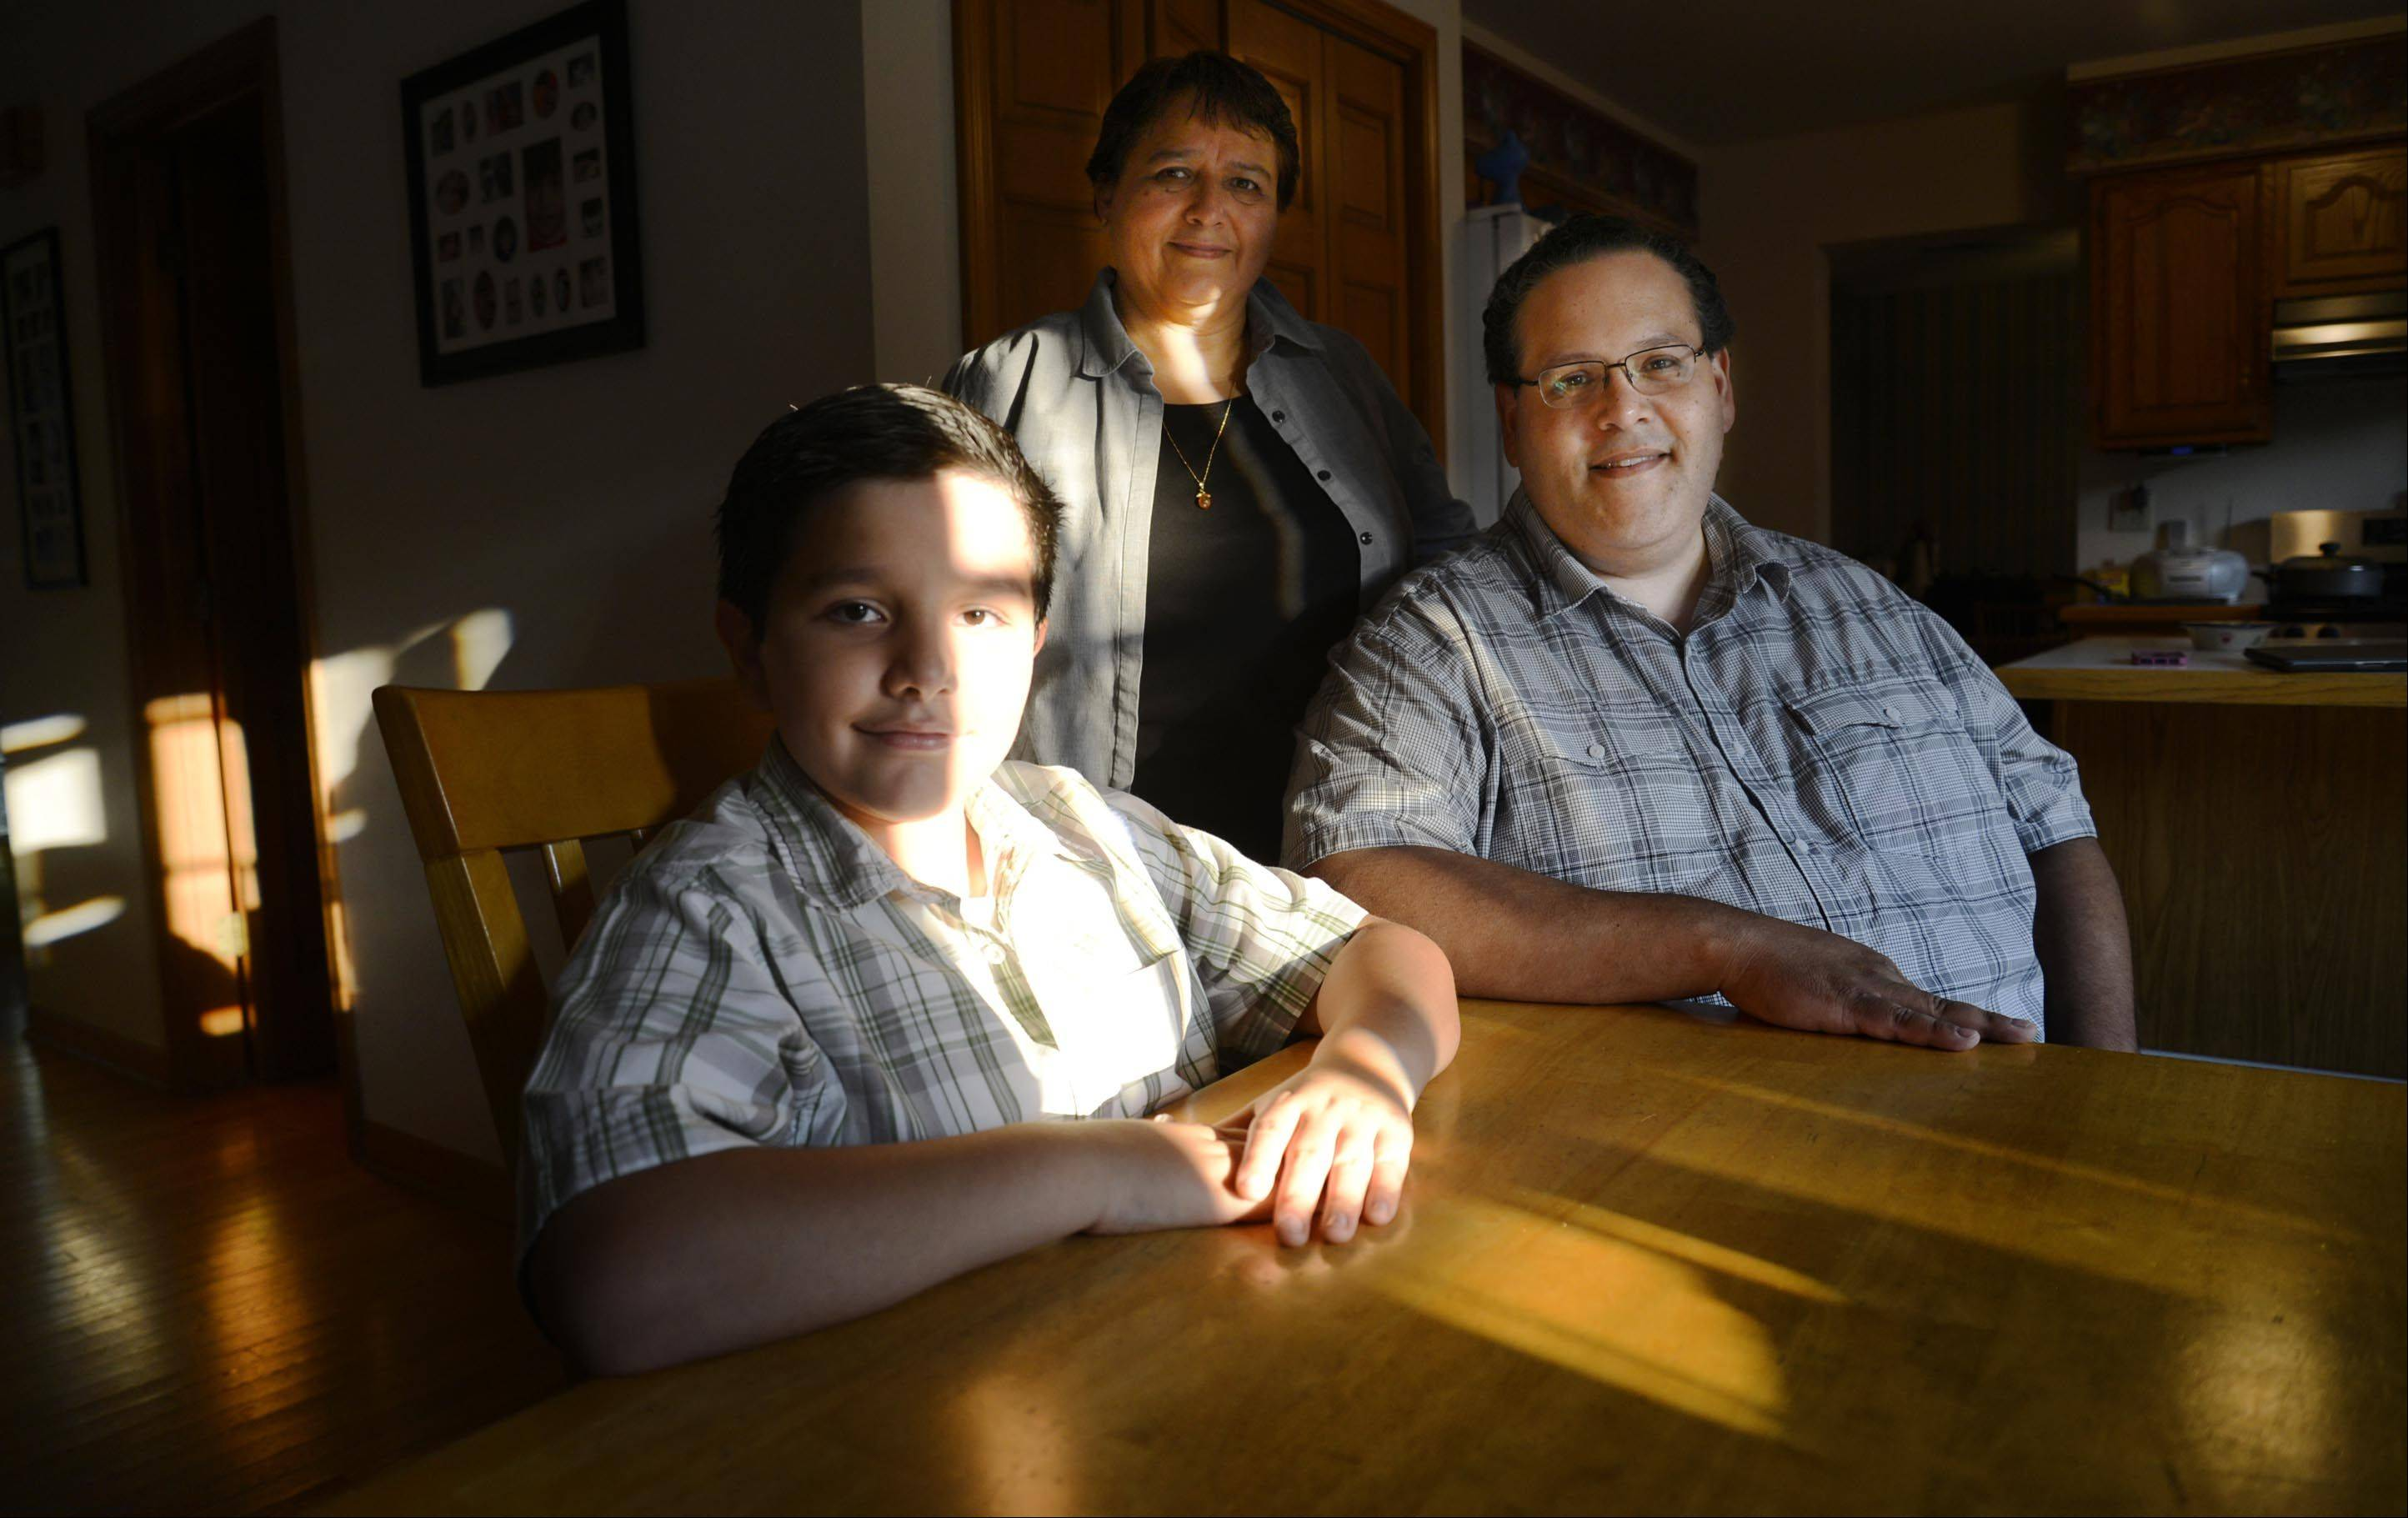 Luis Macias of Elgin directed �Embracing Dyslexia,� a documentary about dyslexia that will premiere Saturday in Elgin. His son Alejandro, 11, has dyslexia. In this photo, Alejandra poses with his father and mother Magdalena.